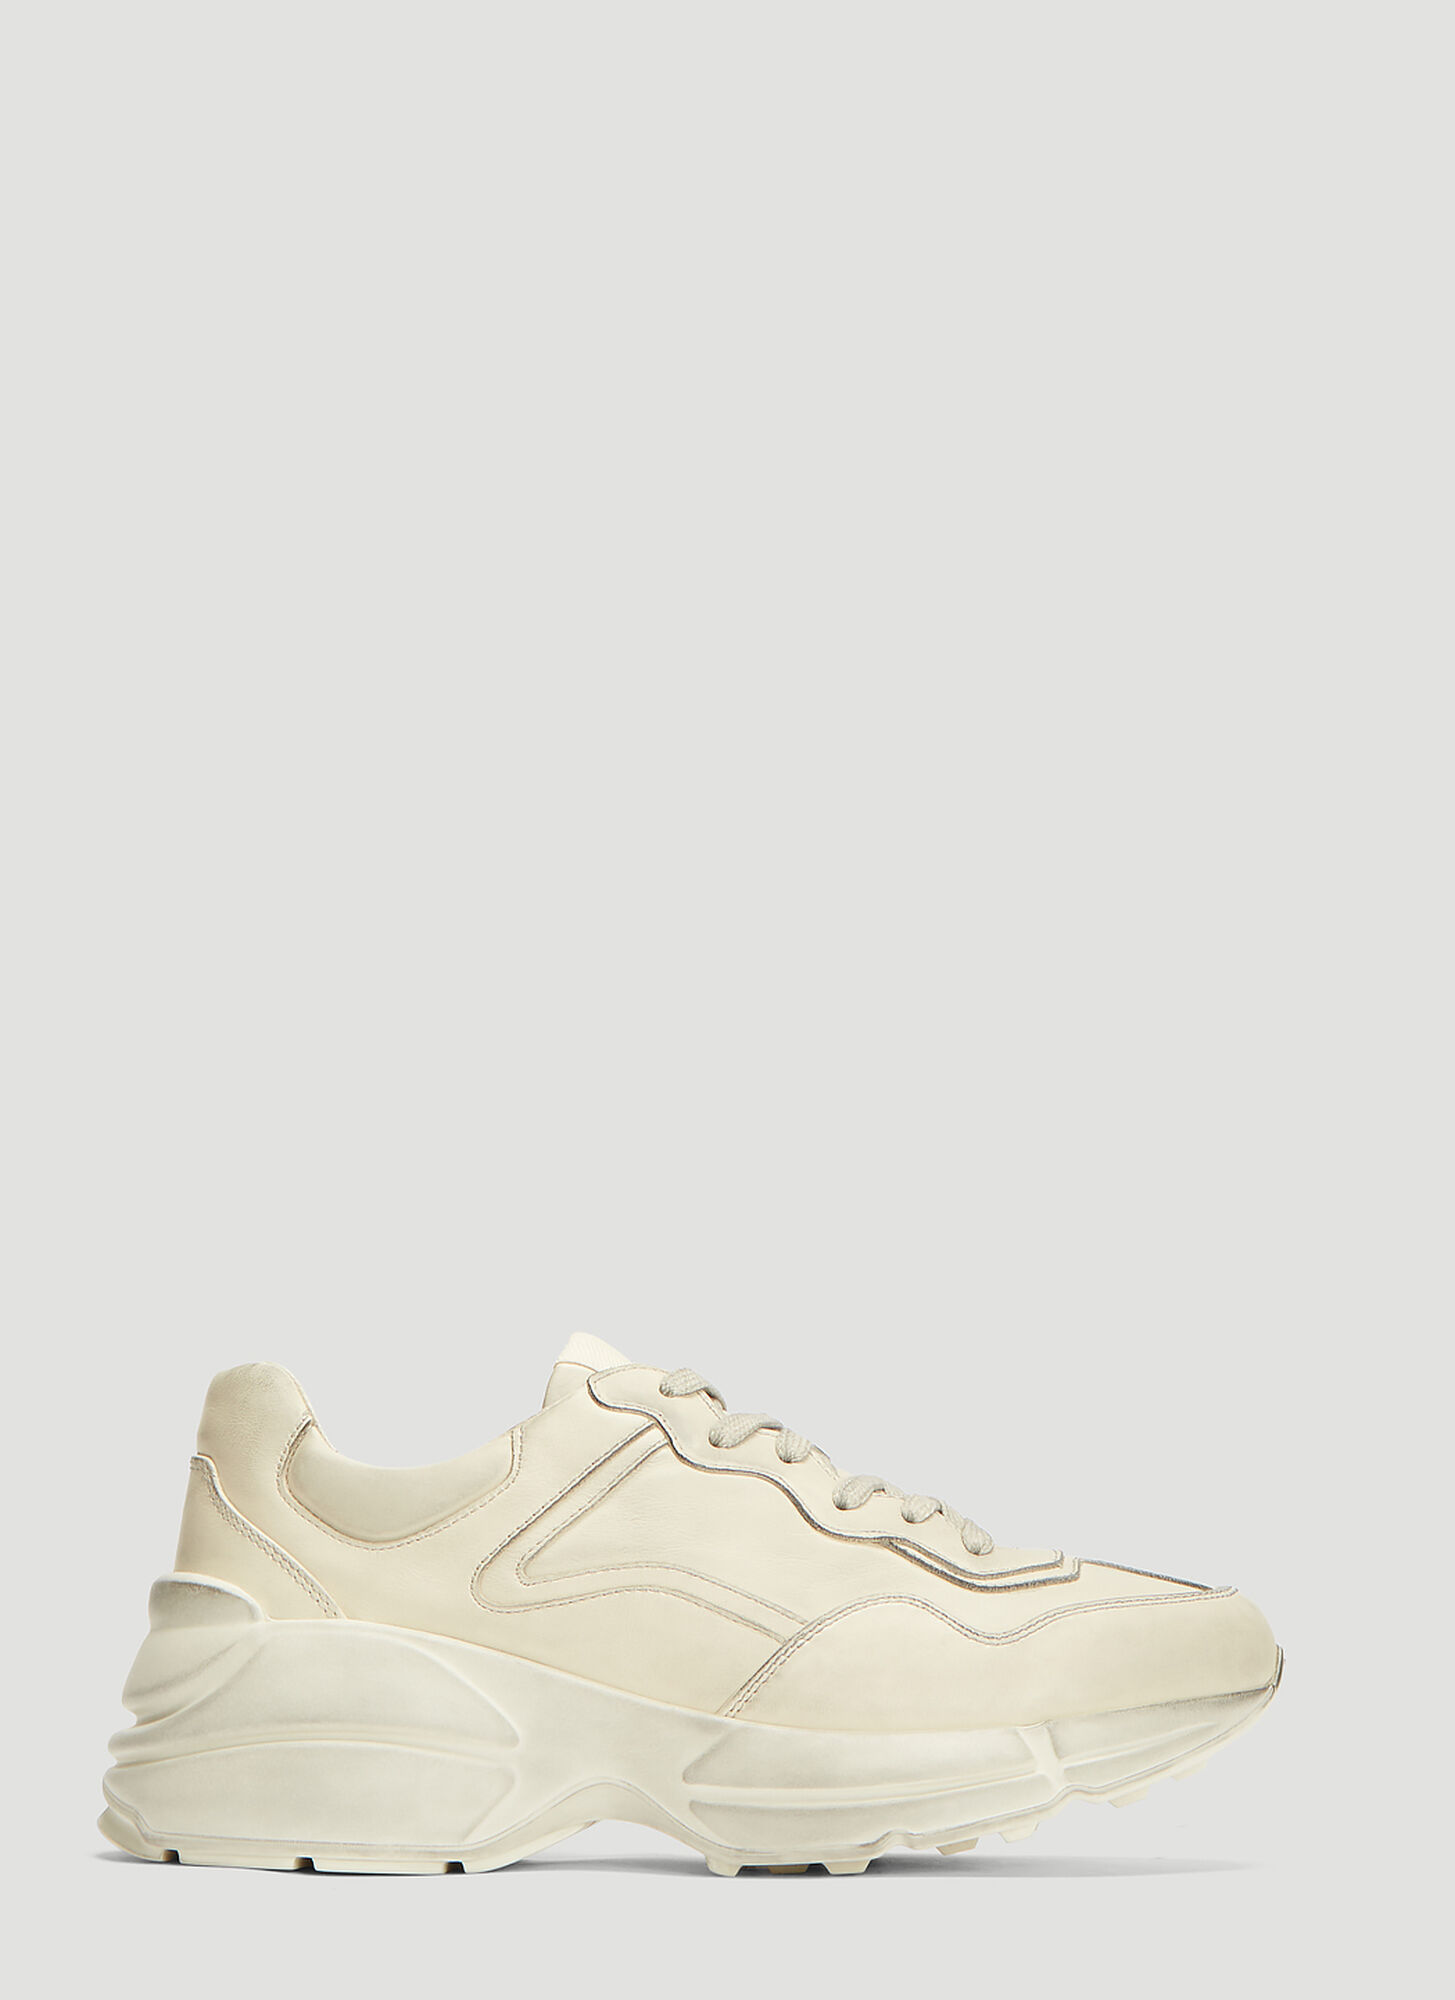 Gucci Rhyton Gucci Logo Leather Sneakers in White